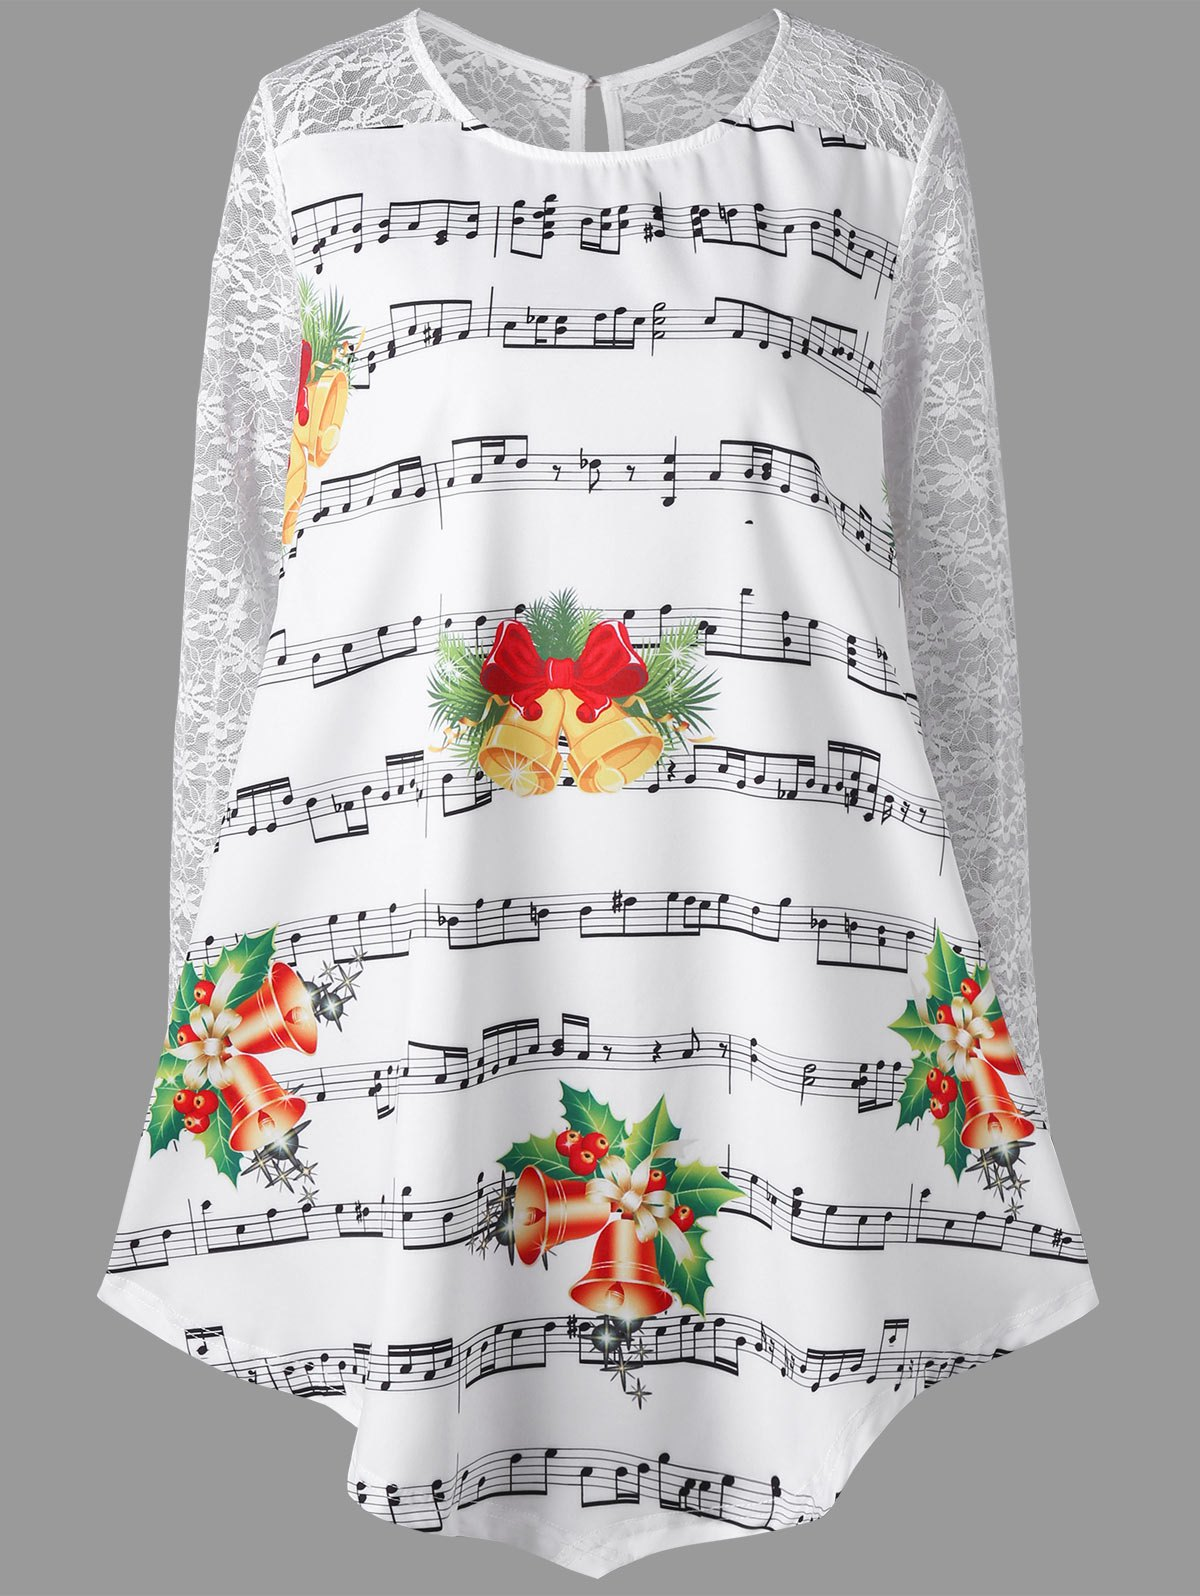 Christmas Plus Size Lace Insert Music Note Print BlouseWOMEN<br><br>Size: 5XL; Color: WHITE; Material: Polyester; Shirt Length: Regular; Sleeve Length: Full; Collar: Round Neck; Style: Fashion; Season: Fall,Spring; Embellishment: Lace; Pattern Type: Print; Weight: 0.2100kg; Package Contents: 1 x Blouse;